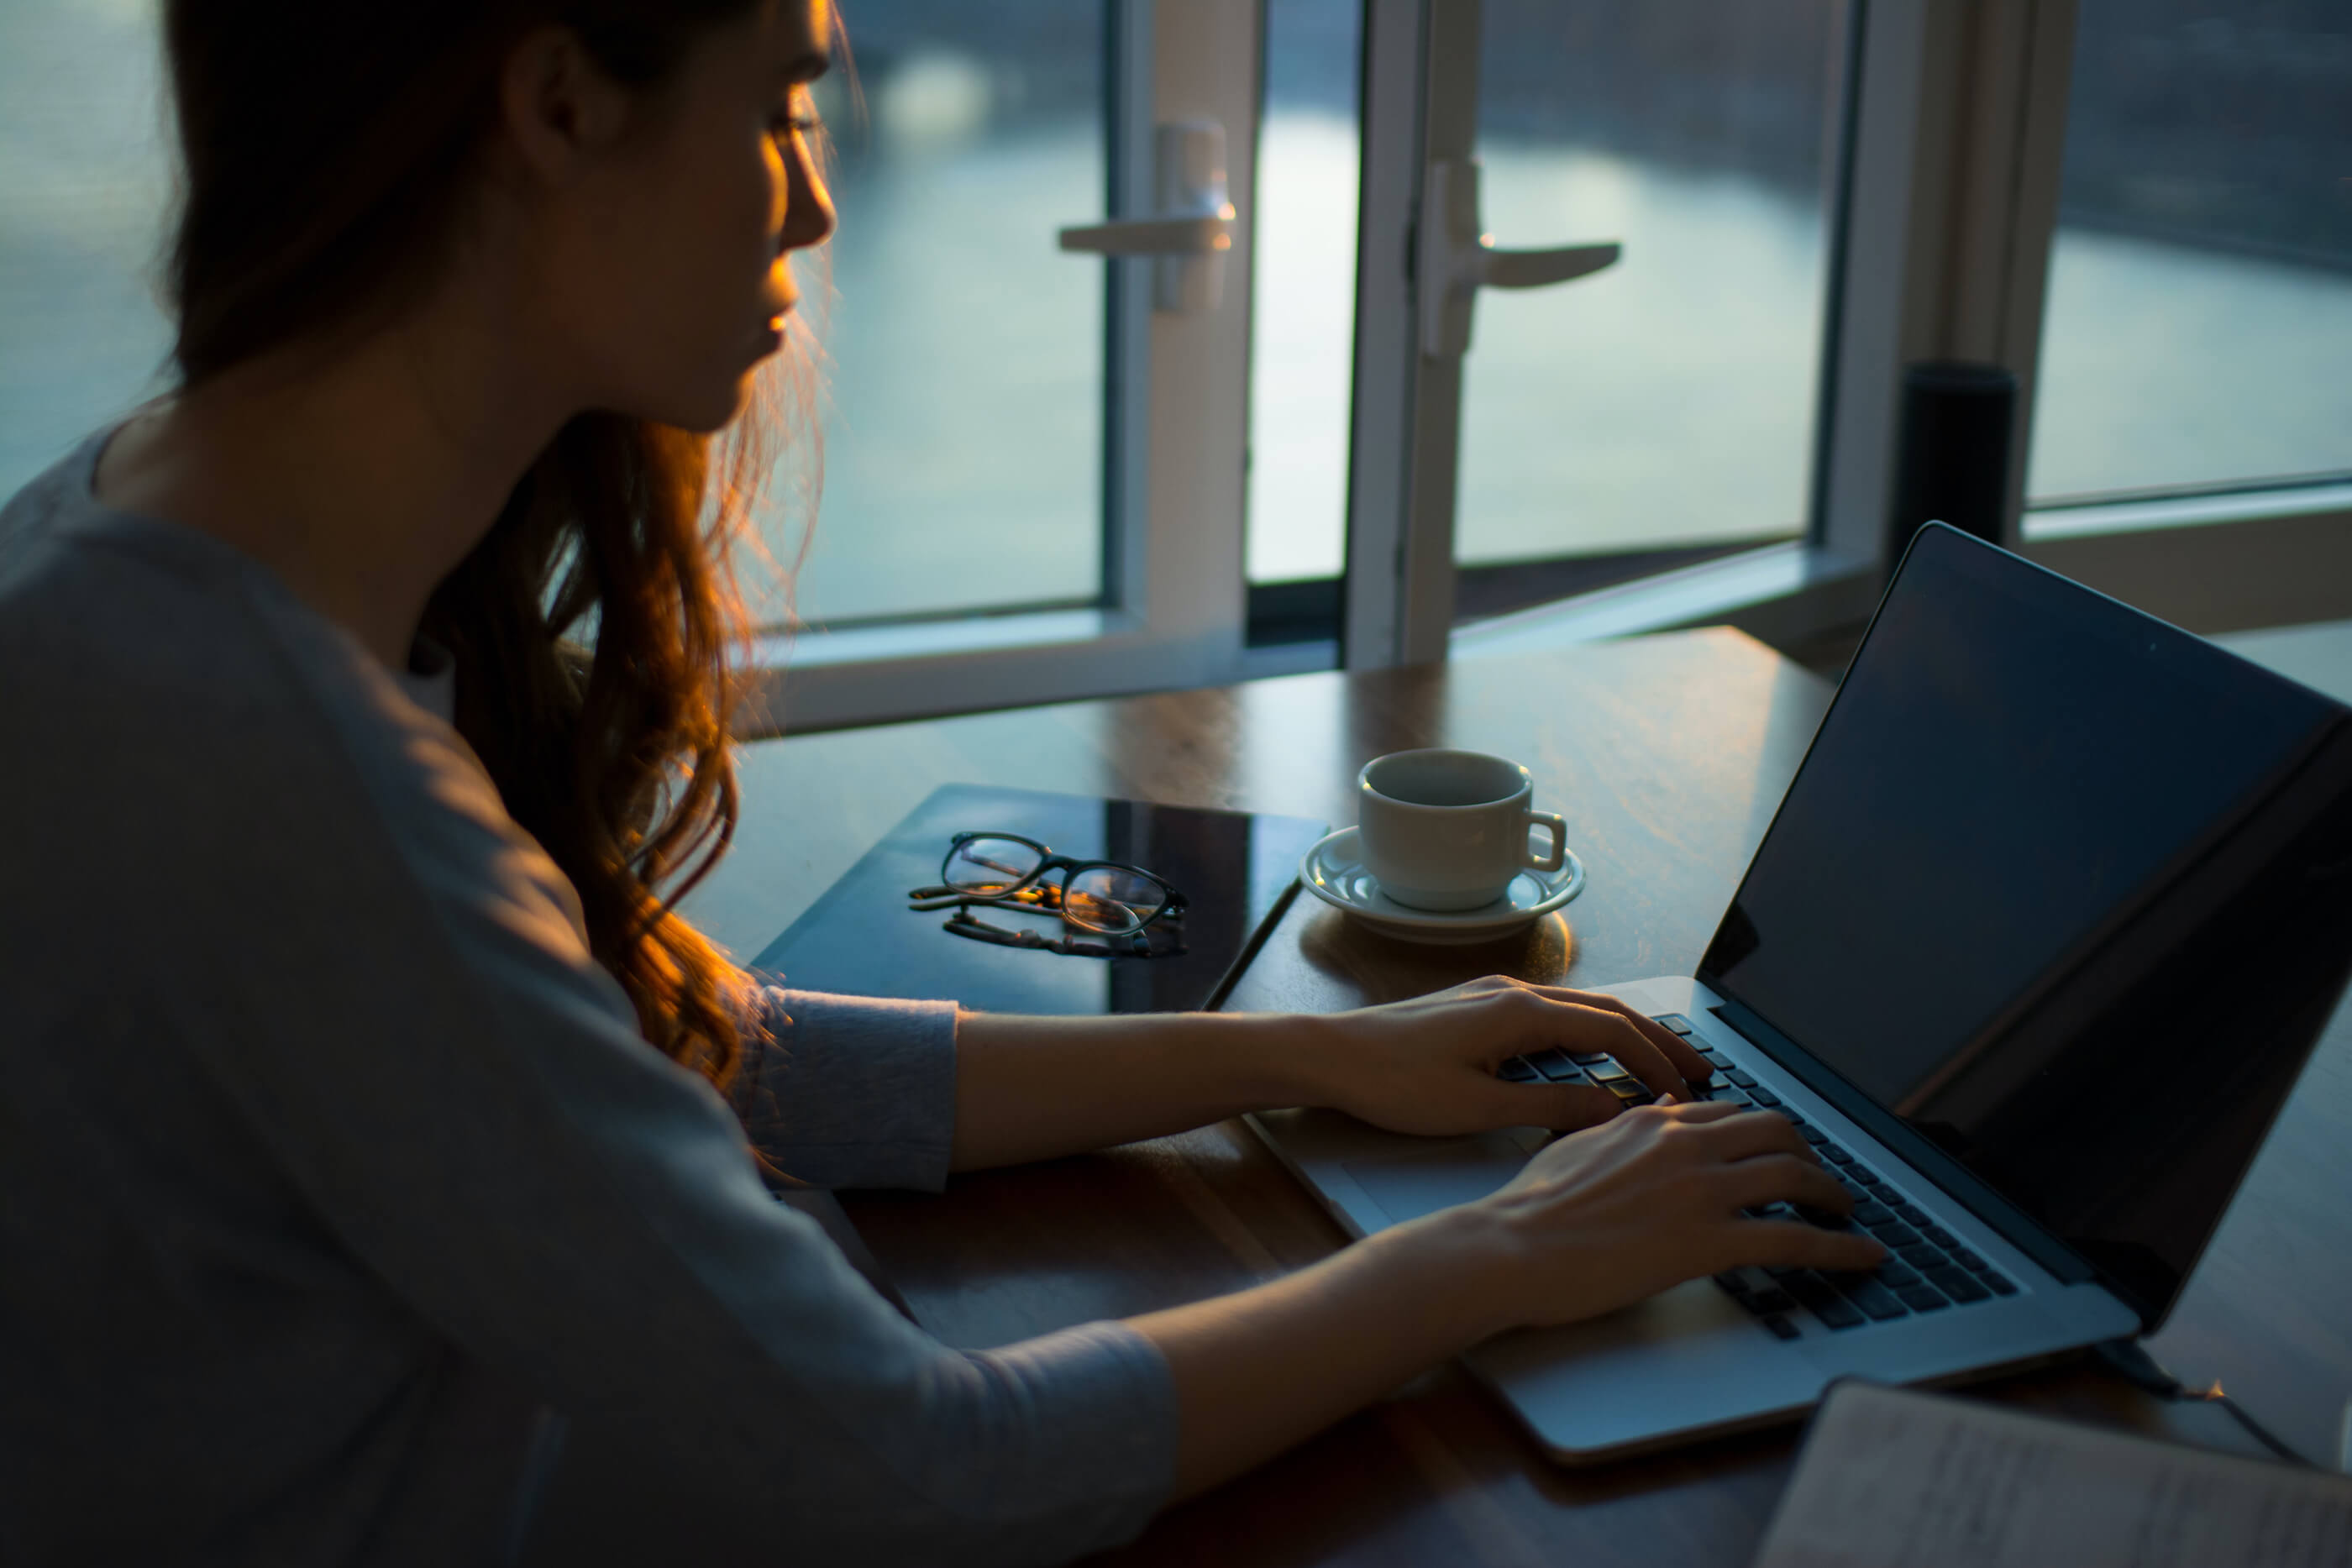 Opinion: The new normal of remote work is going to be here for quite some time